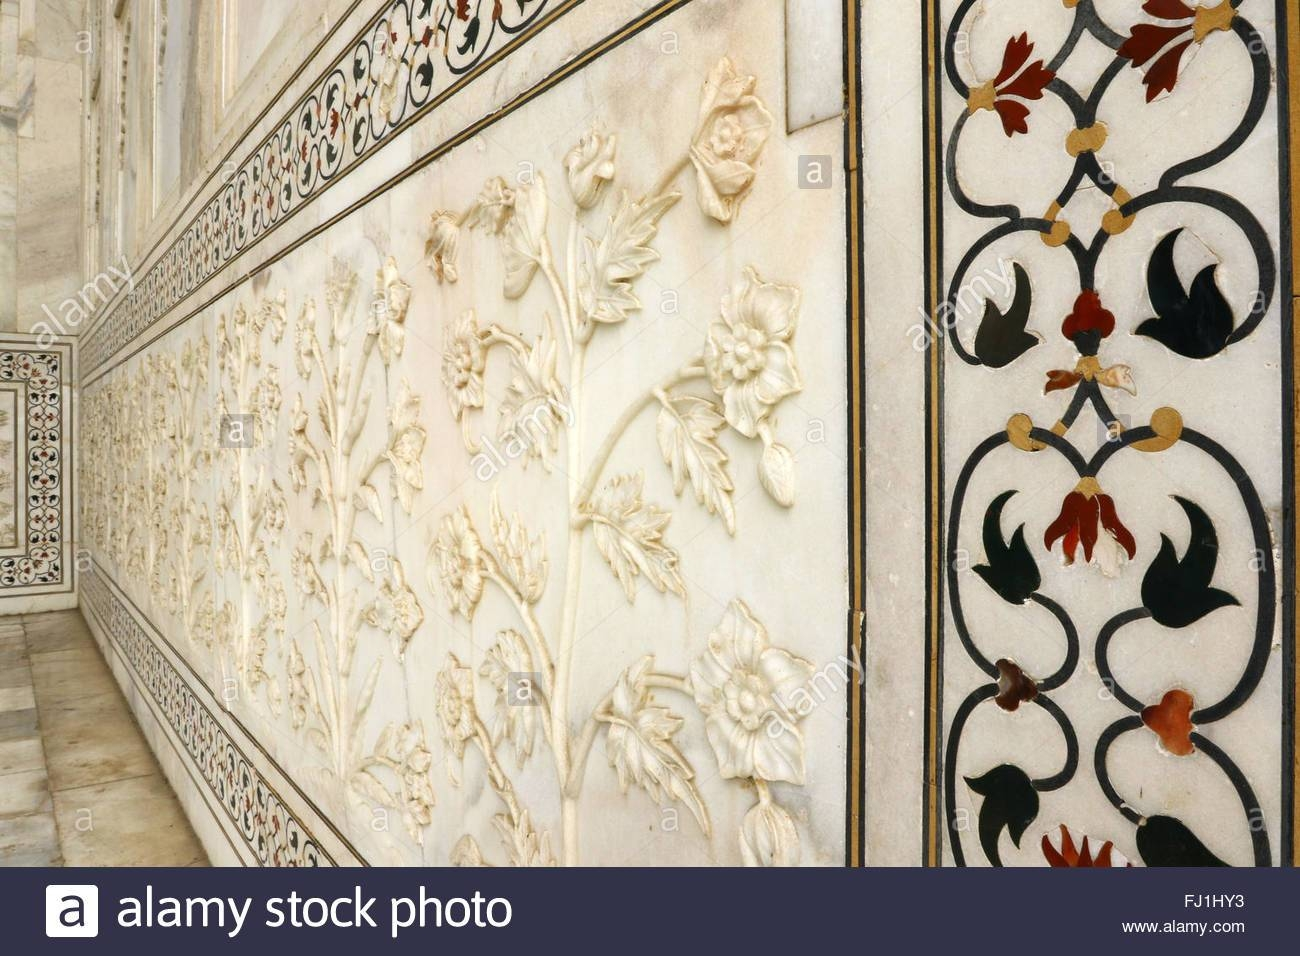 Taj Mahal Marble Art Flowers Plants Carving On Taj Mahal Marble Intended For Most Recently Released Taj Mahal Wall Art (View 23 of 25)